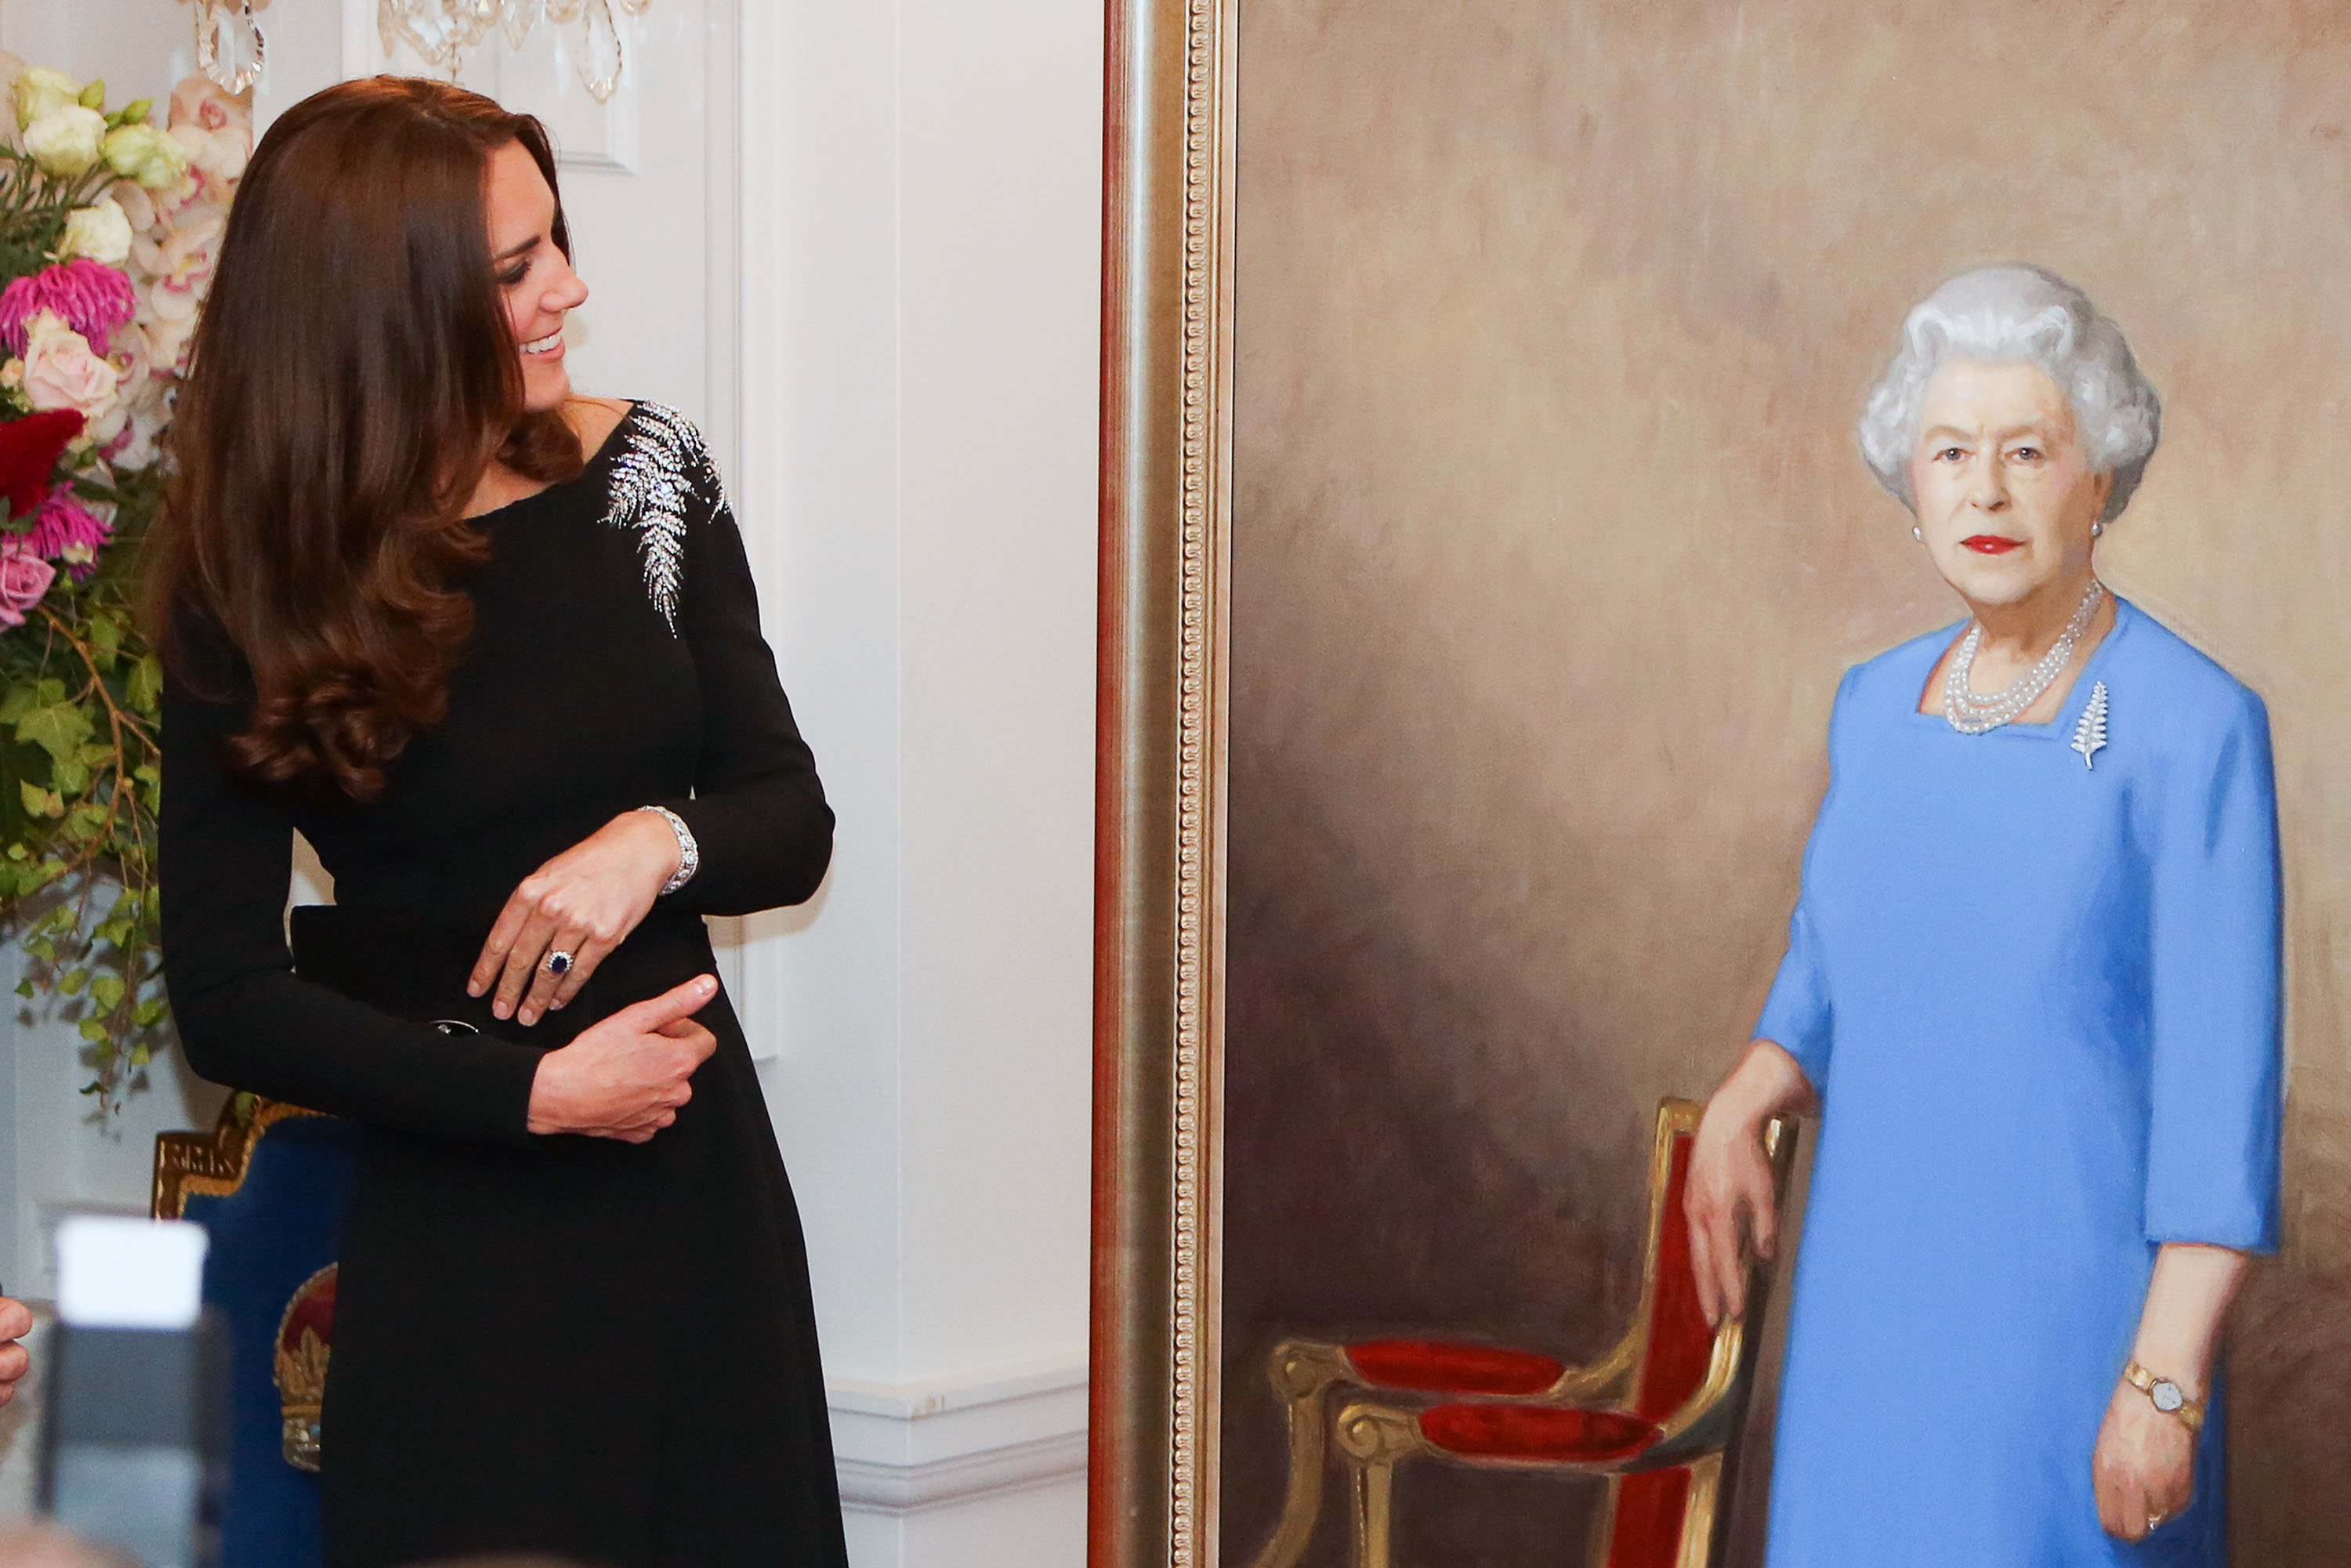 Image Credit: Getty Images / Catherine, Duchess of Cambridge inspects a portrait of Queen Elizabeth II, unveiled during a state reception at Government House on April 10, 2014 in Wellington, New Zealand.